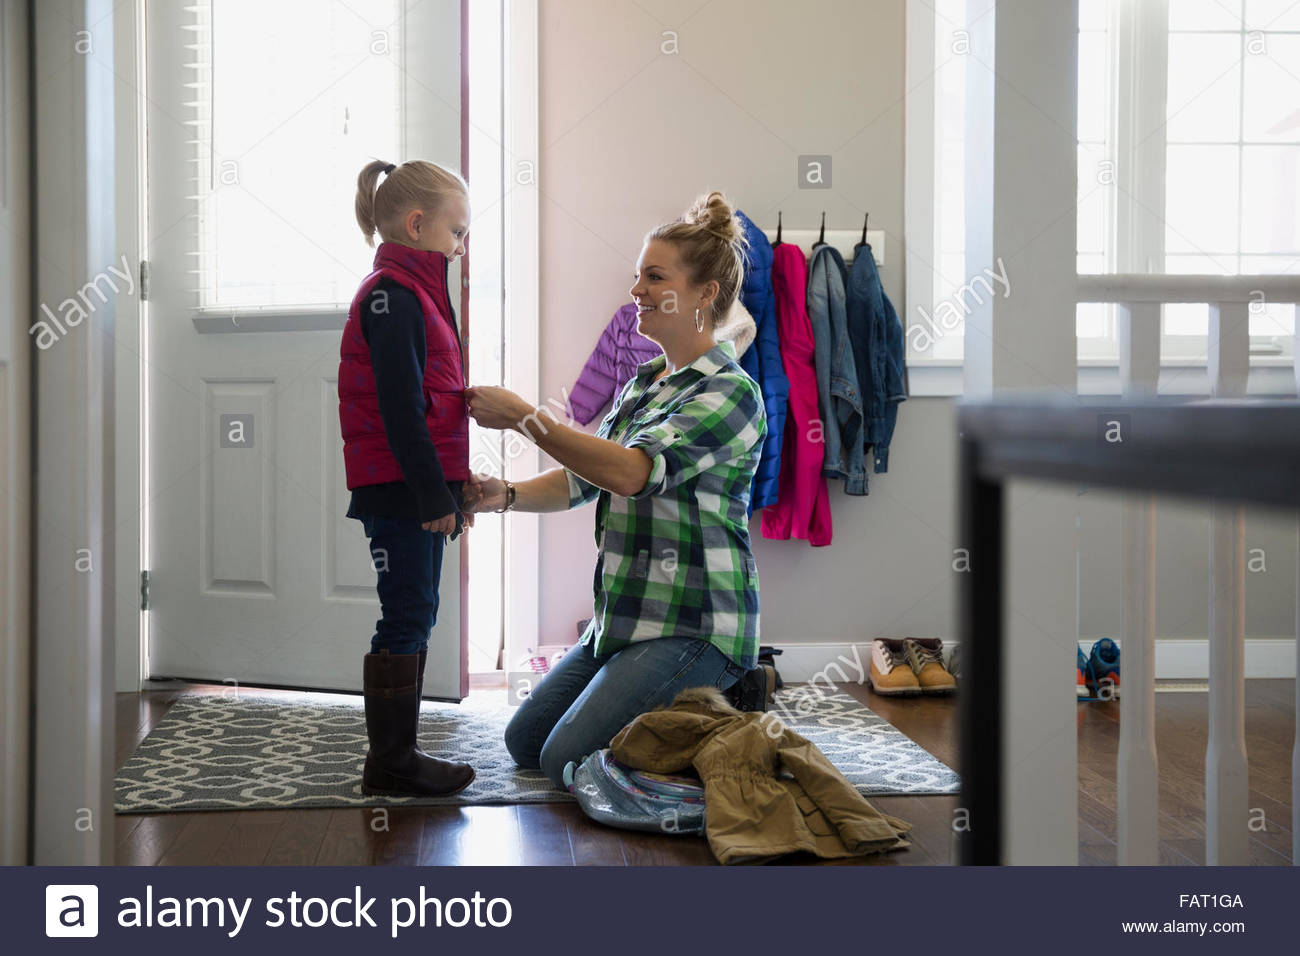 Mother zipping vest on daughter at front door Stock Photo